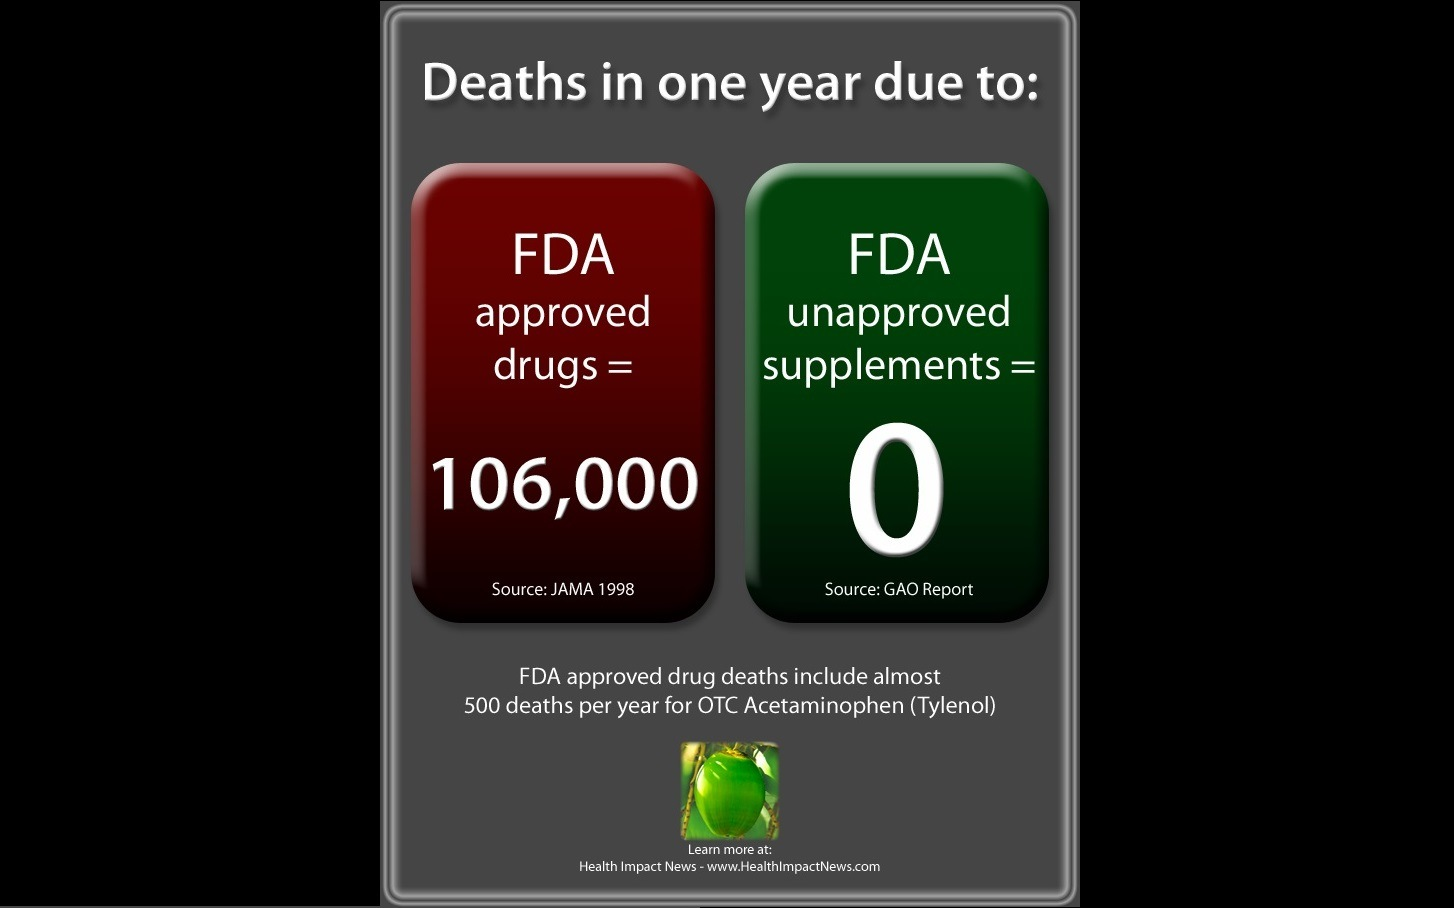 deaths-in-one-year-due-to-drugs-vs-supplements-FB